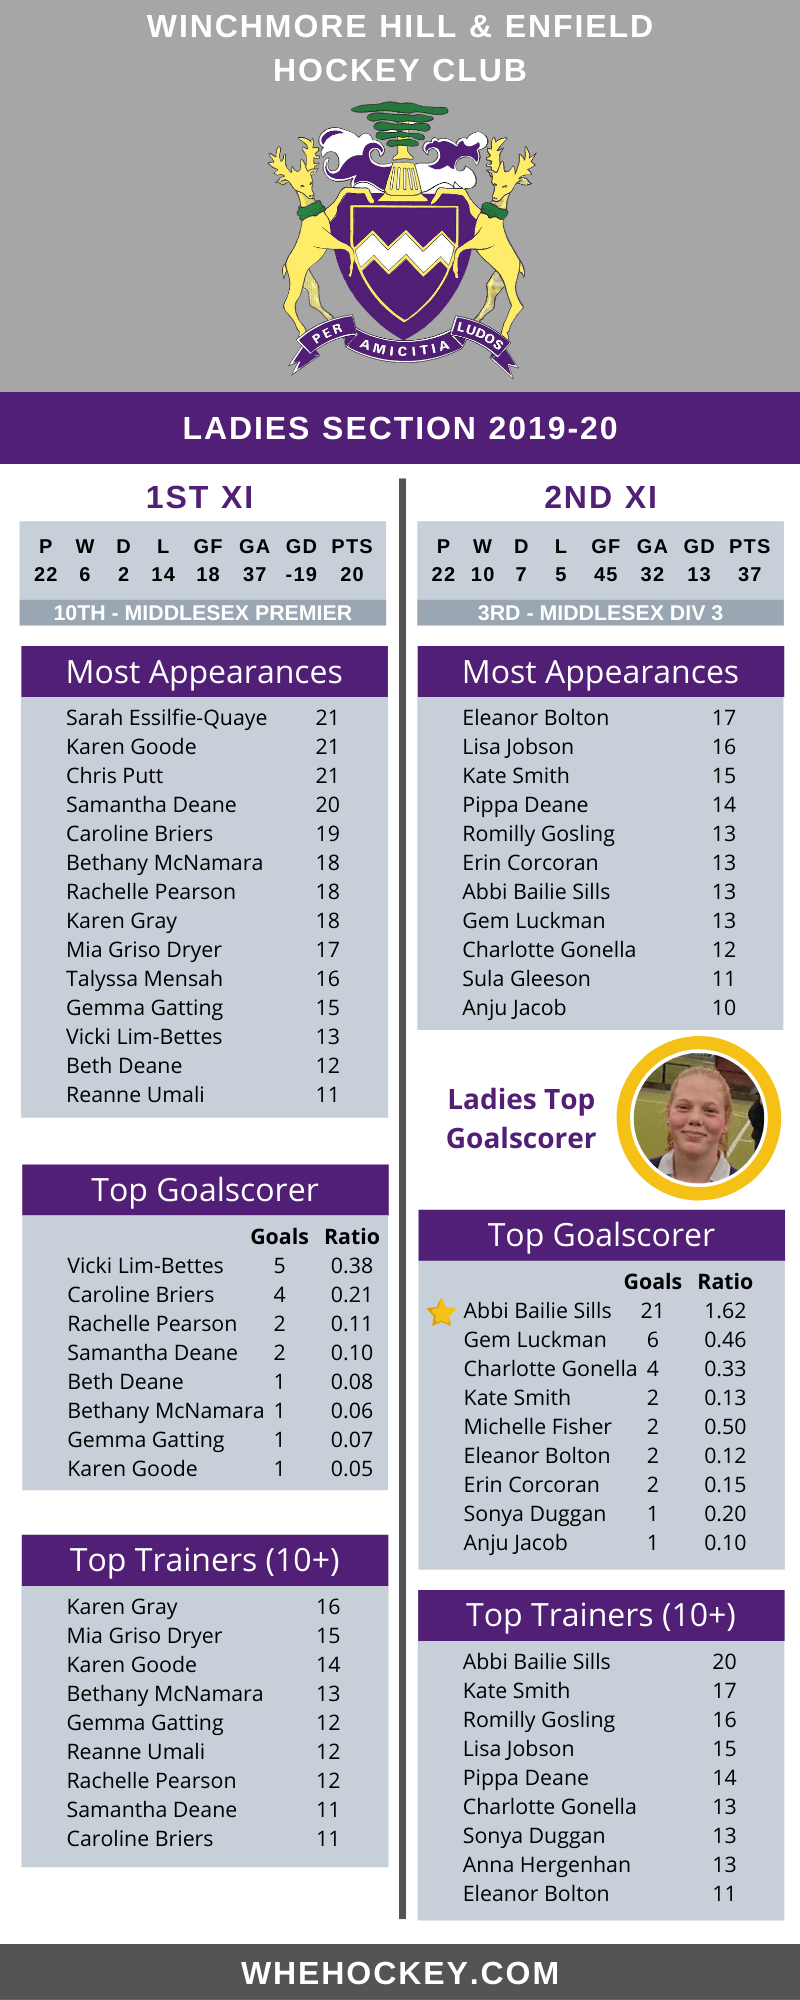 WHE Stats 2019-20 - Ladies